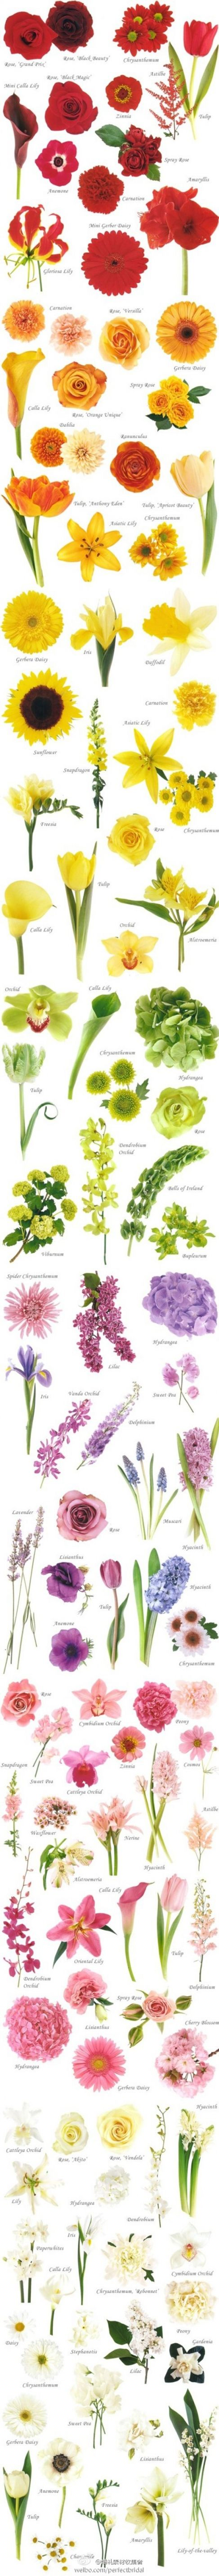 A colorful glossary of blooms